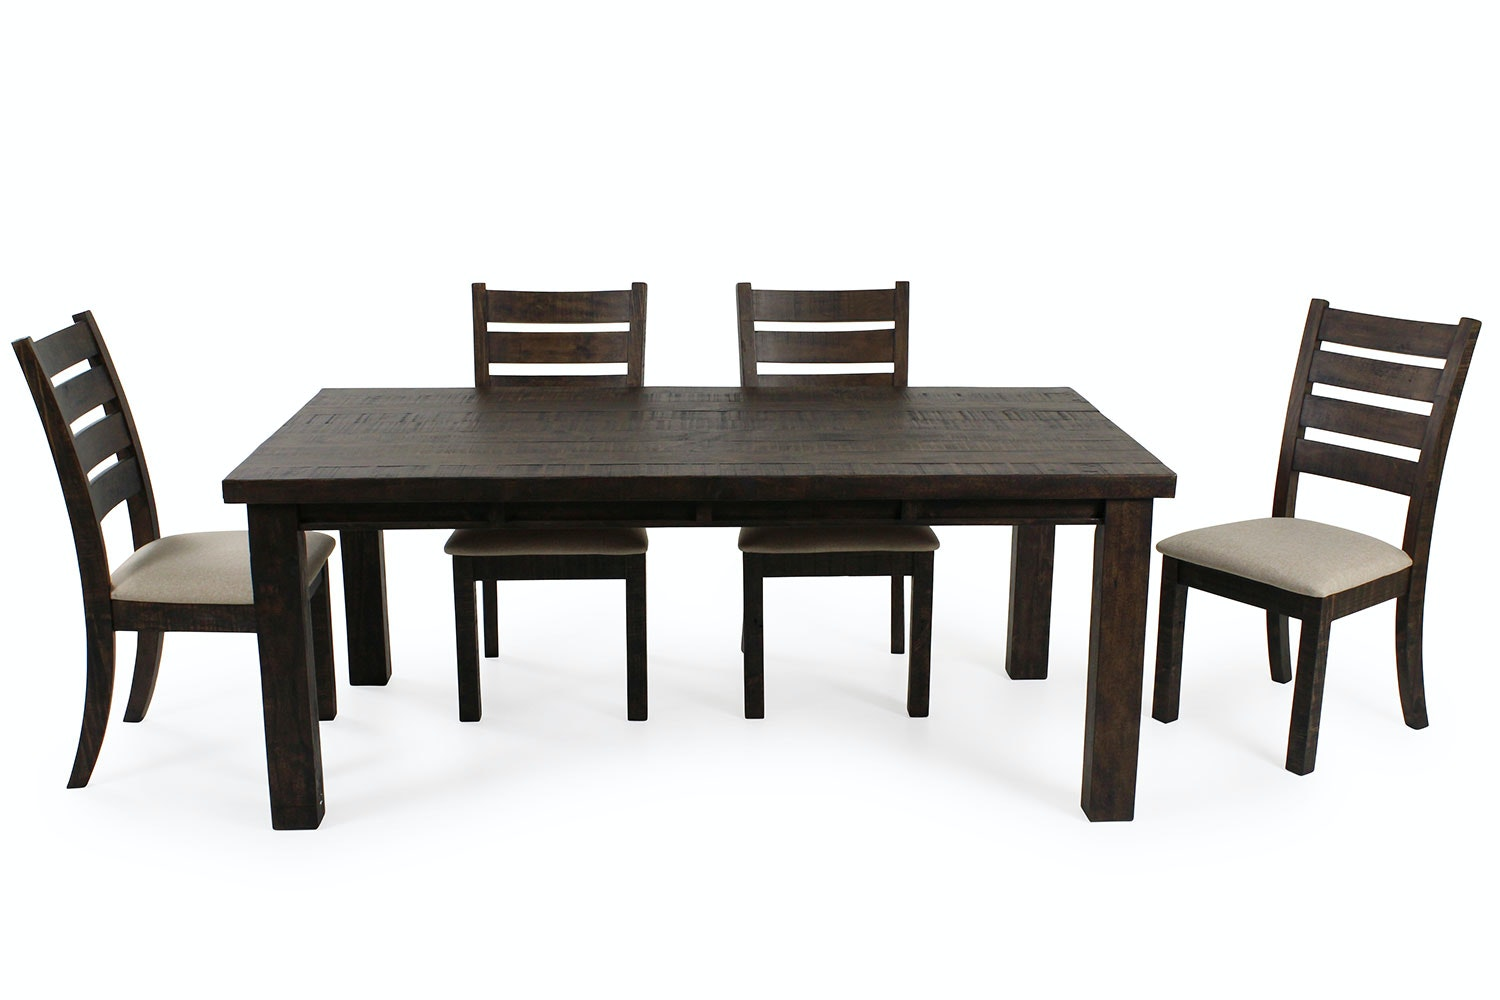 Barnyard Dining Table by Debonaire Furniture